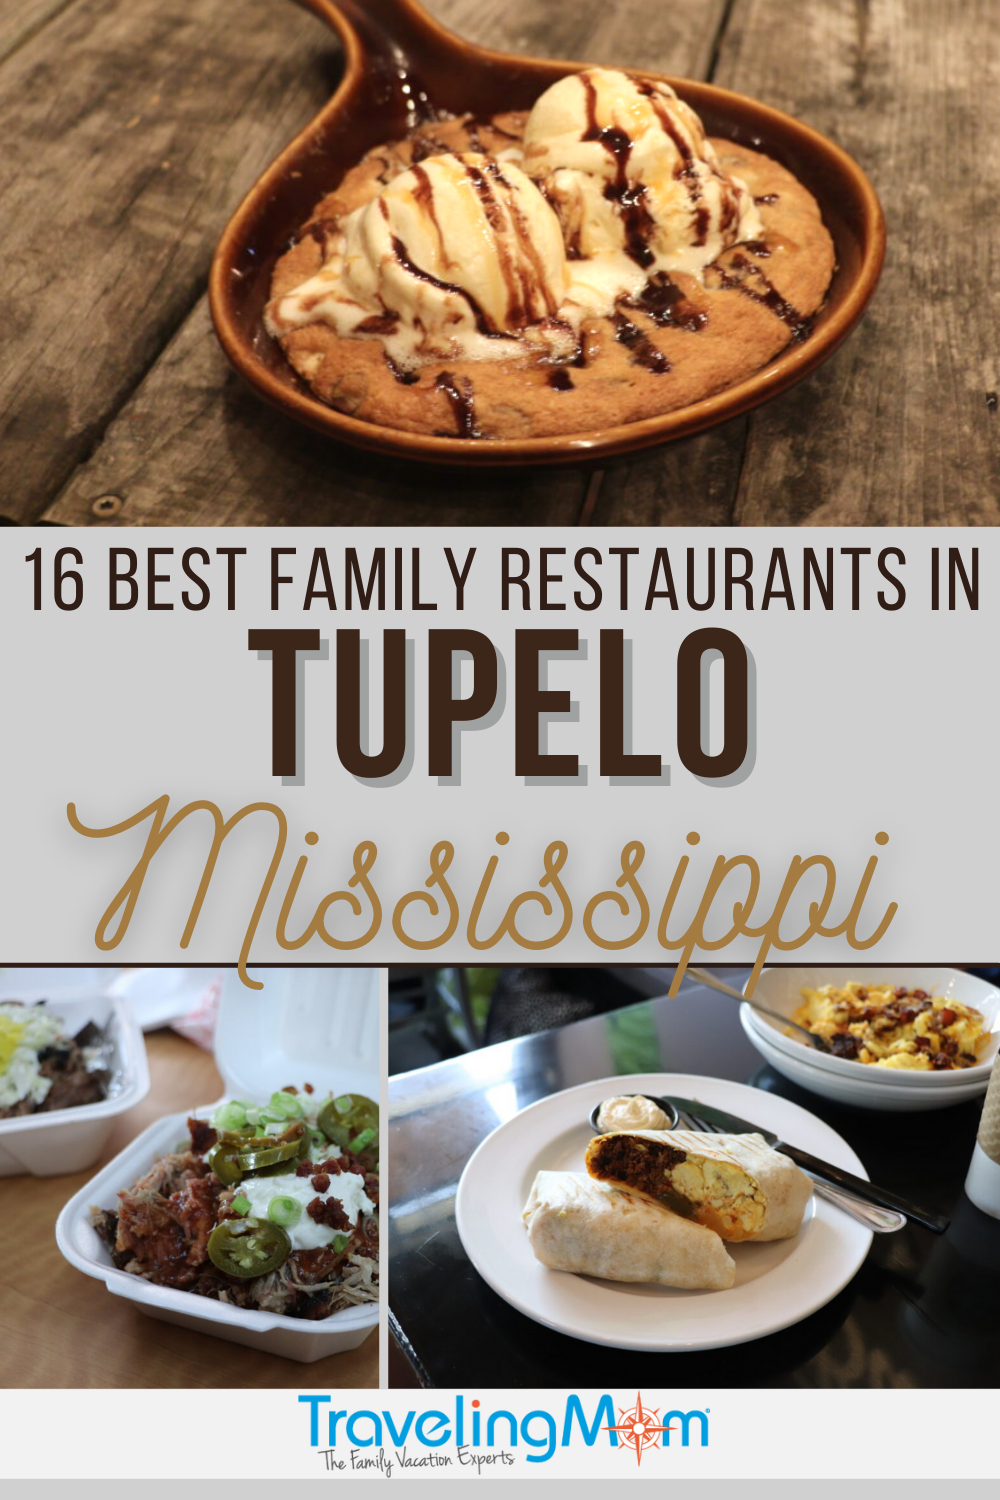 photos of restaurant dishes in tupelo mississippi with text reading 16 best family restaurants in tupelo mississippi